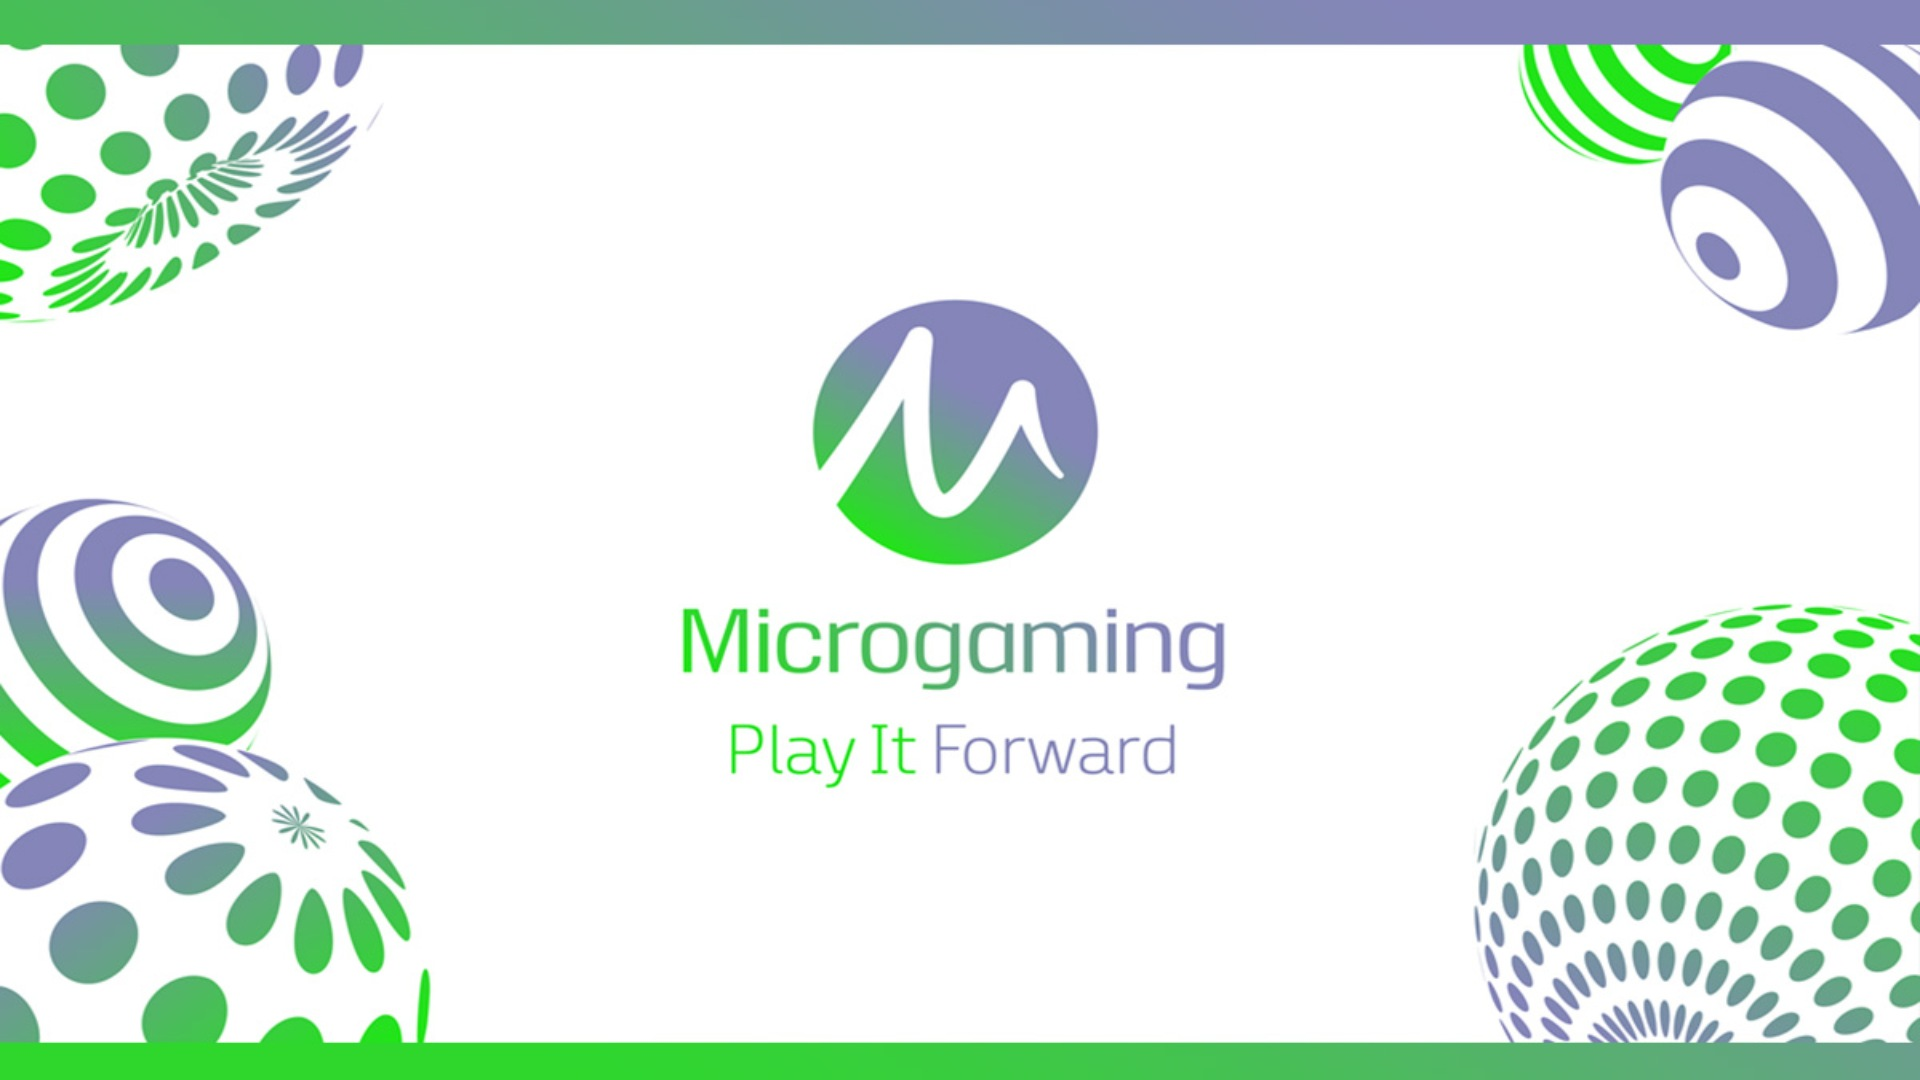 Microgaming apoia a Gordon Moody Association